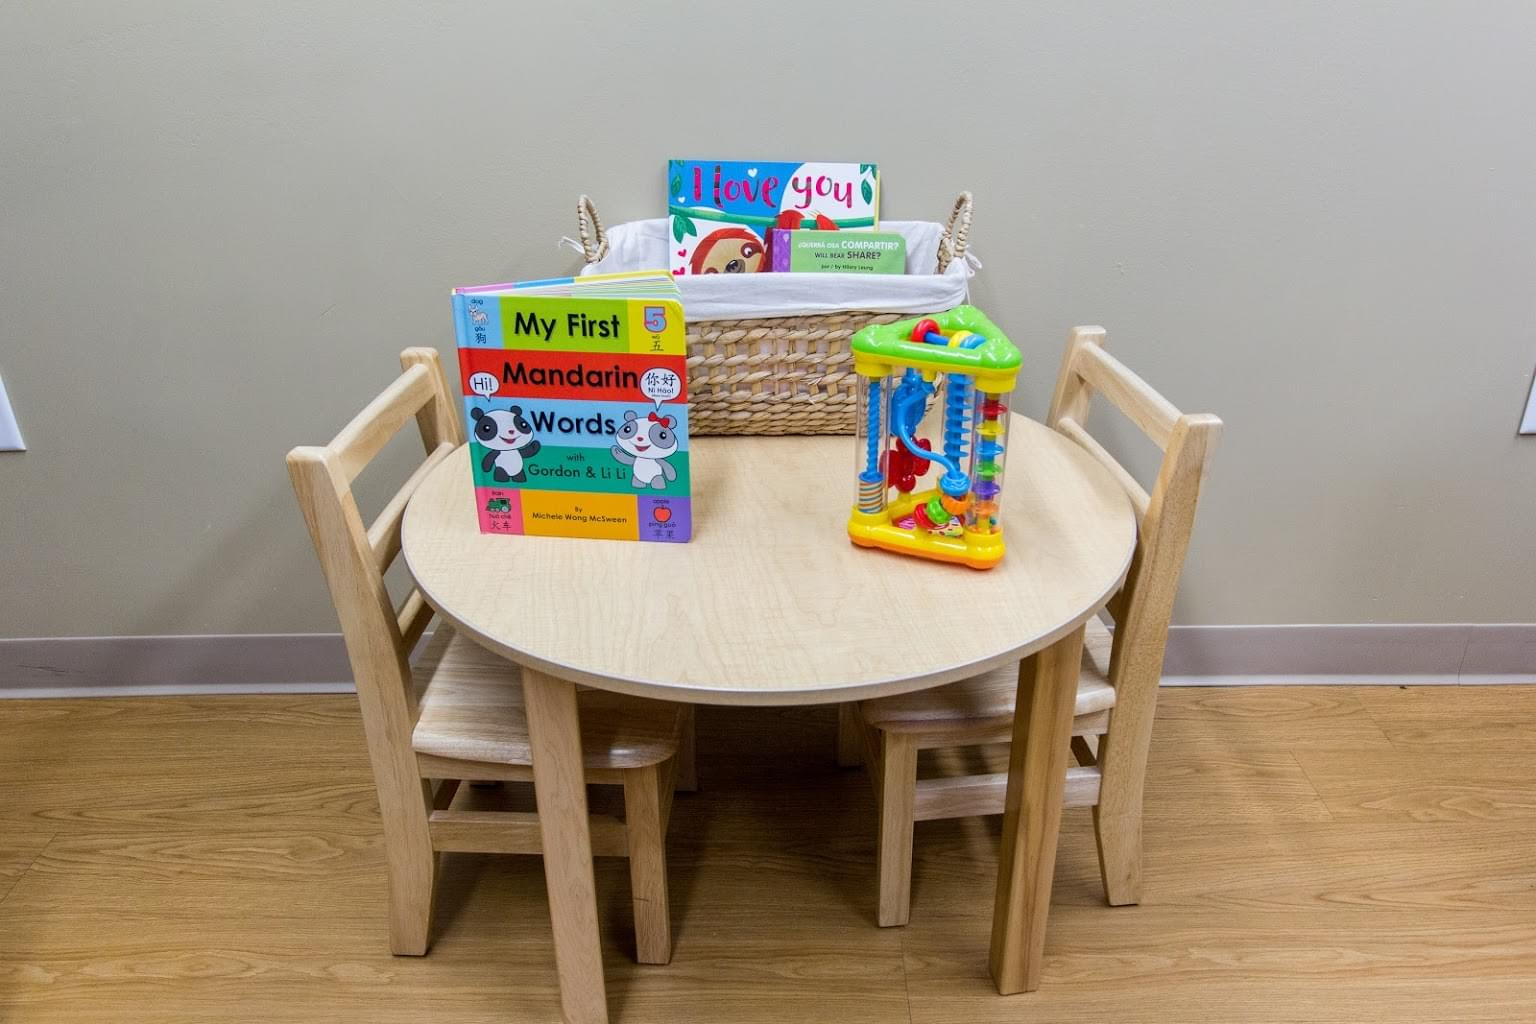 Lightbridge Academy pre-school and daycare in Fort Lee, NJ